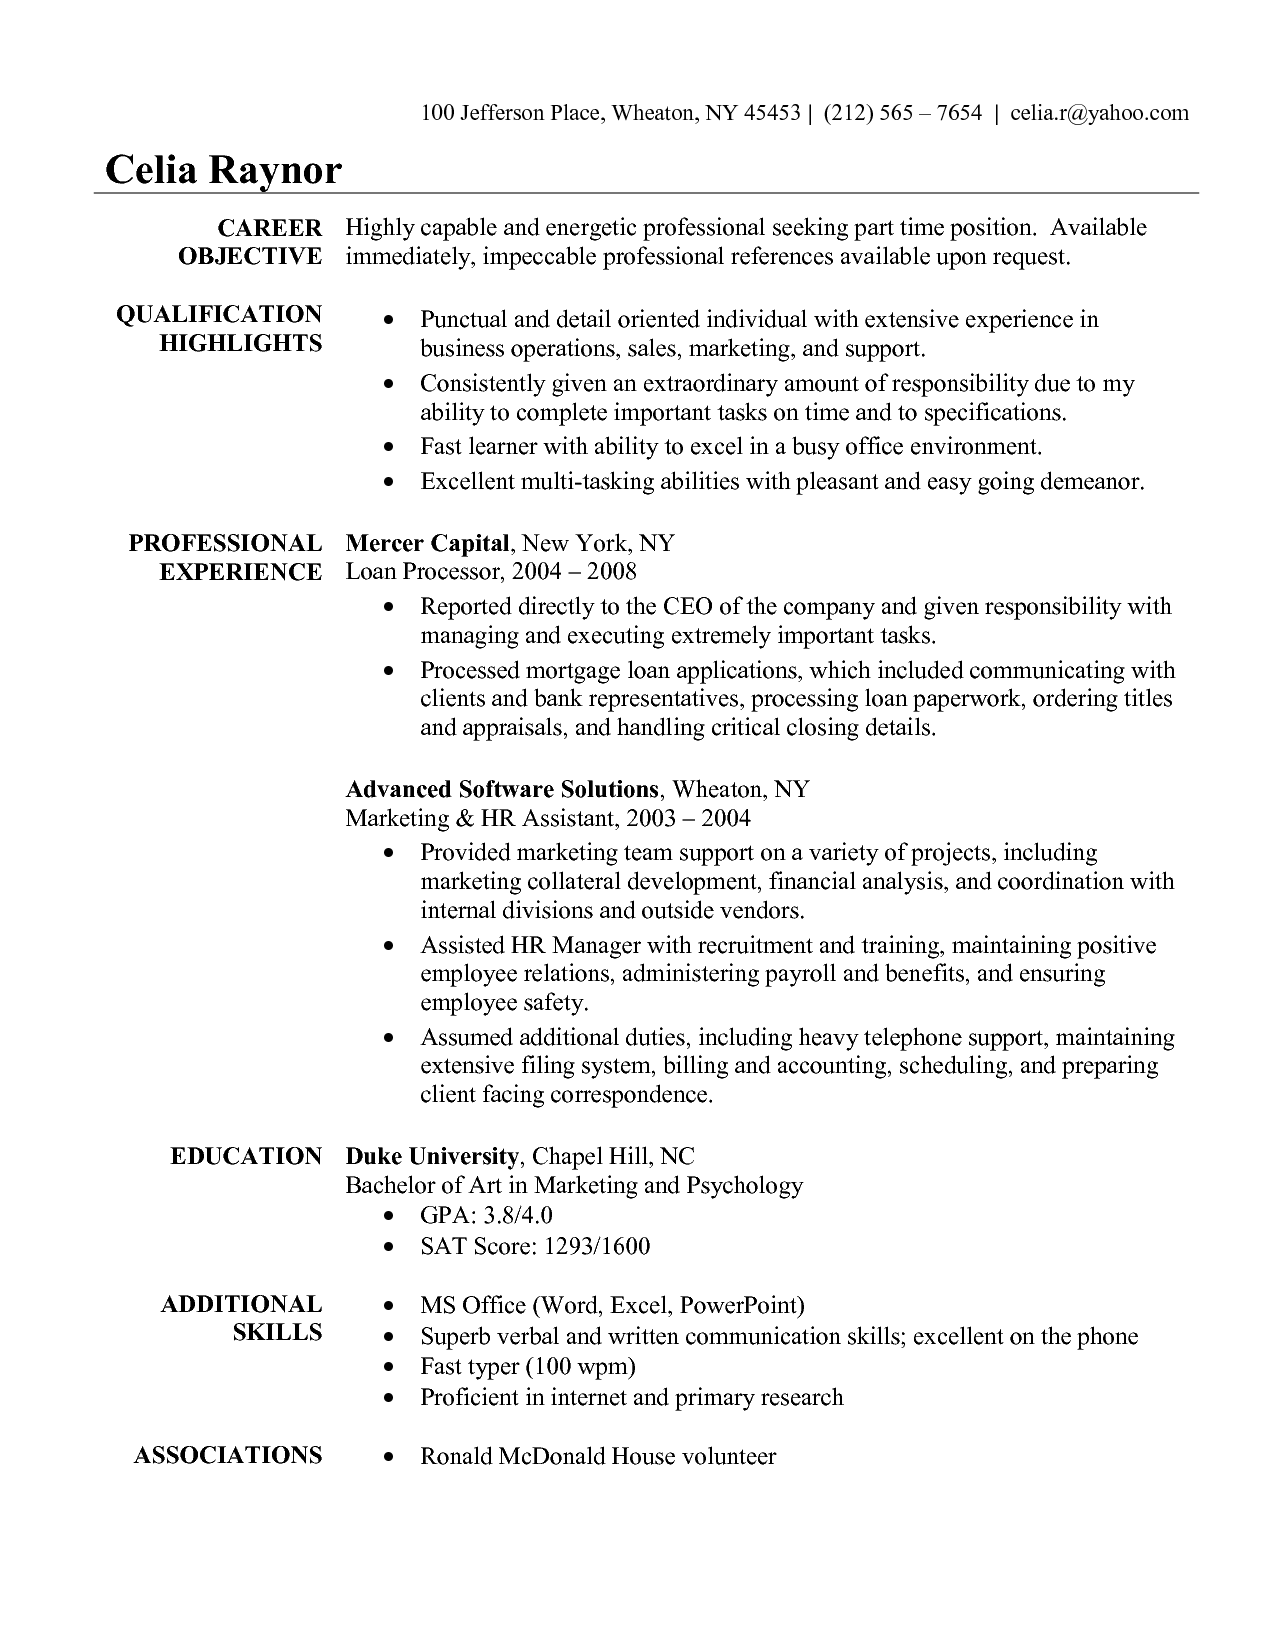 Administrative Objective For Resume Extraordinary Resume Sample For Administrative Assistant Resume Samples For .